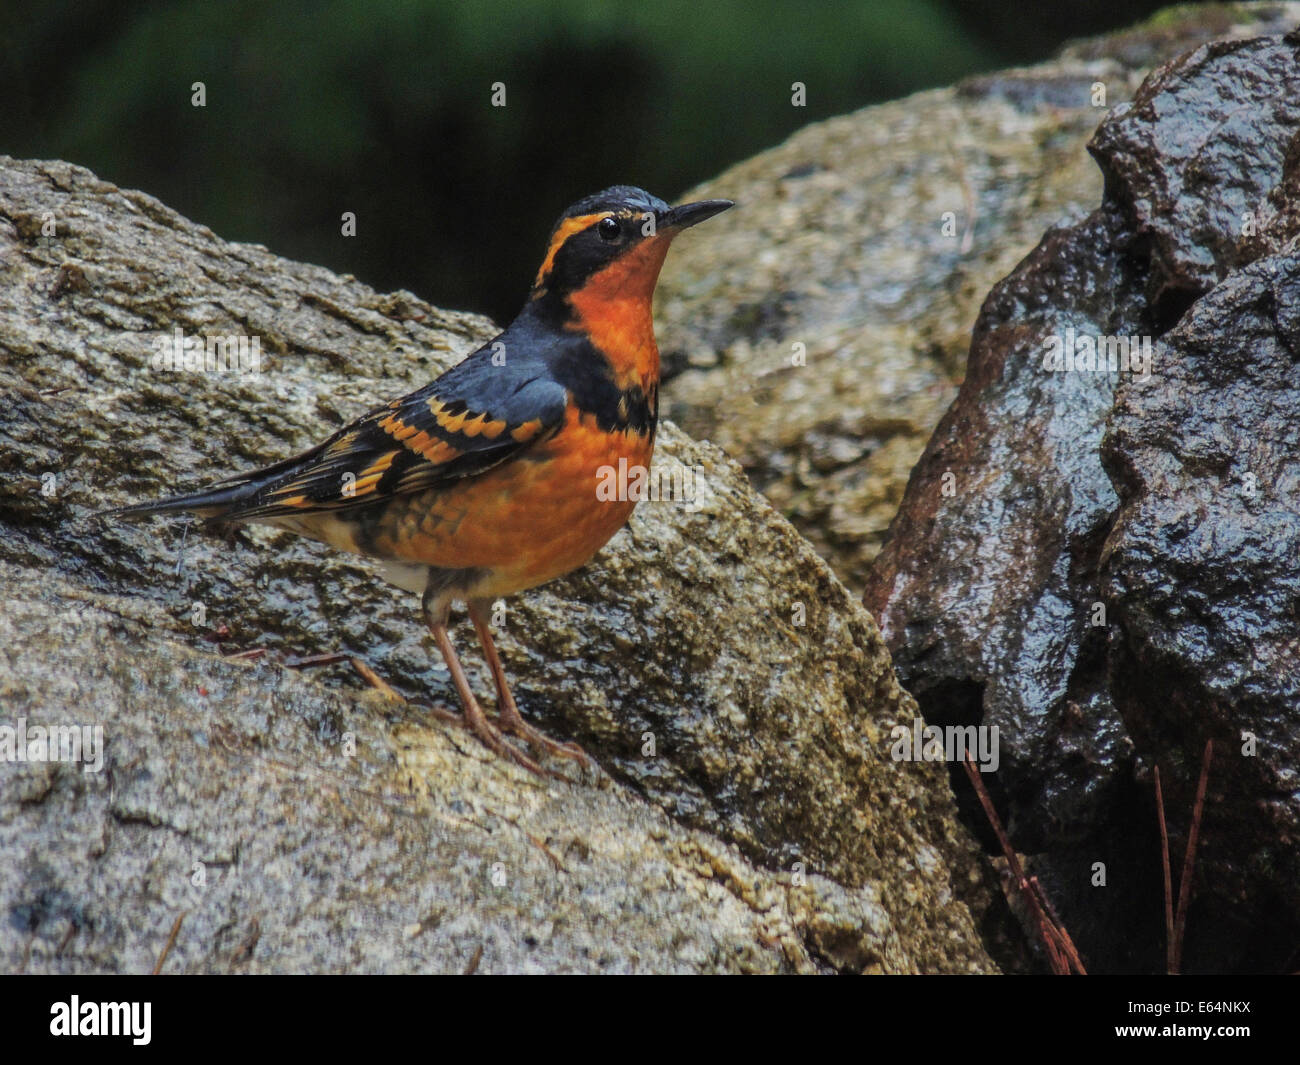 A Varied Thrush Male , Sierra Foothills of Northern California. - Stock Image